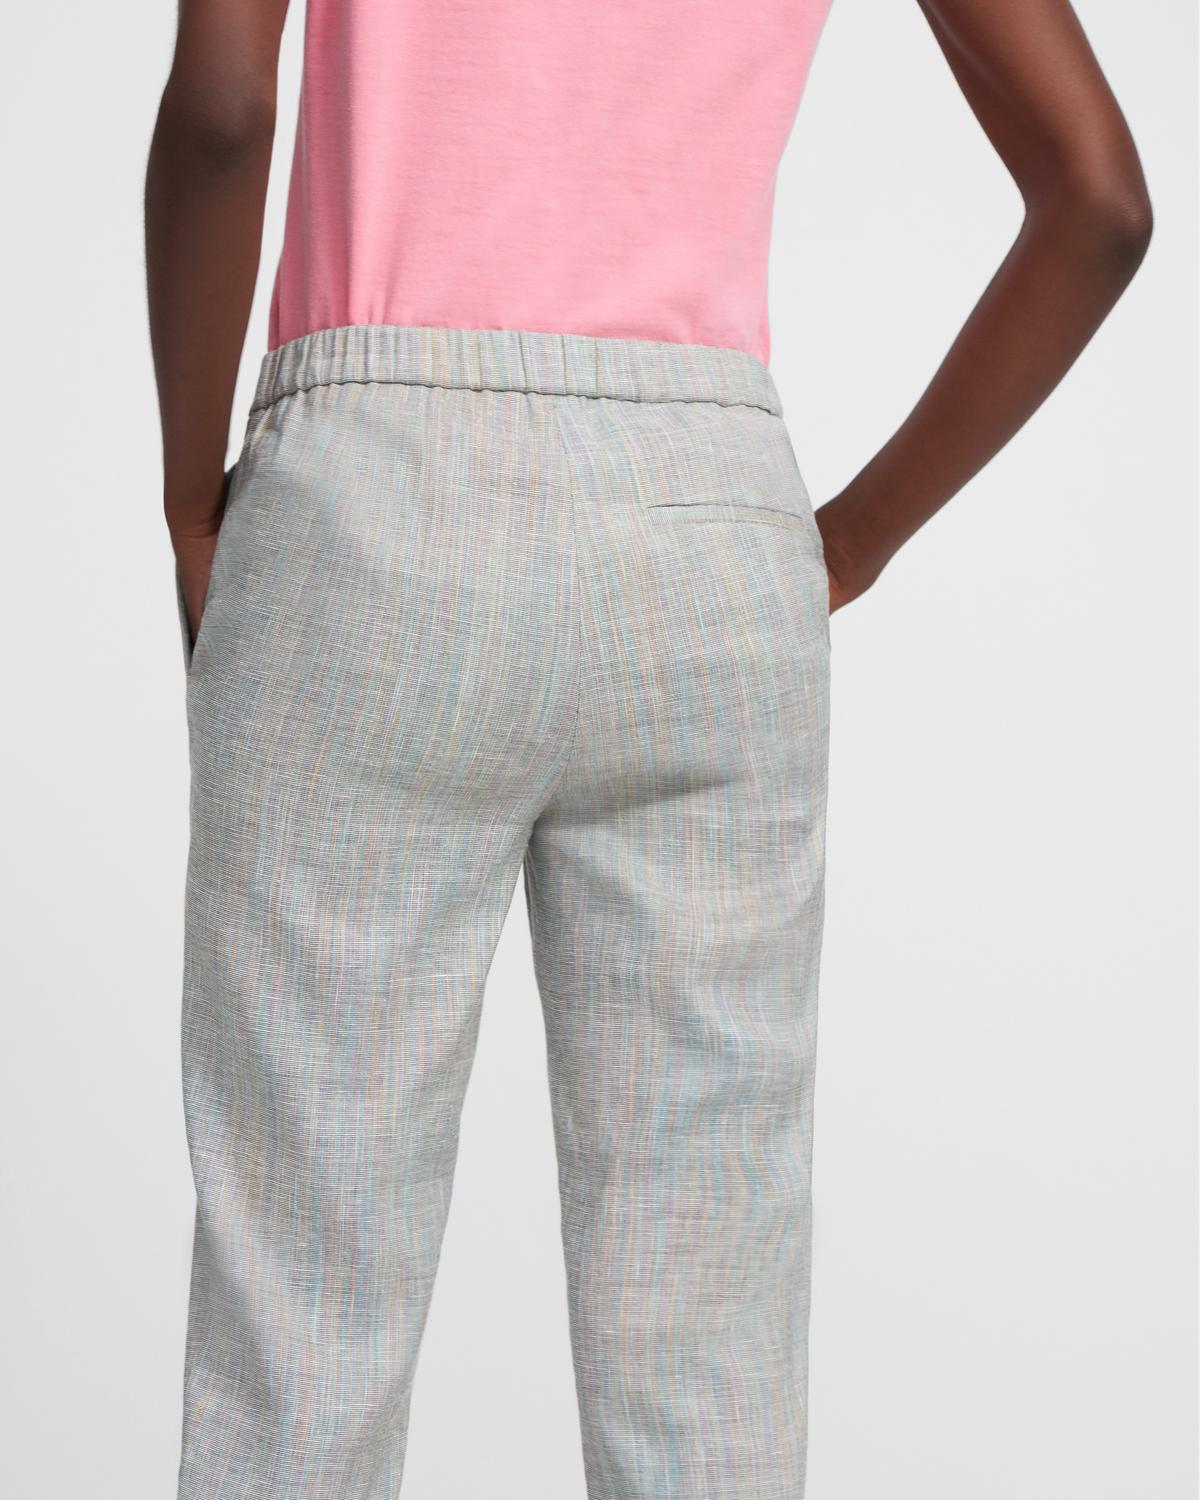 Treeca Pull-On Pant in Multicolored Stretch Linen